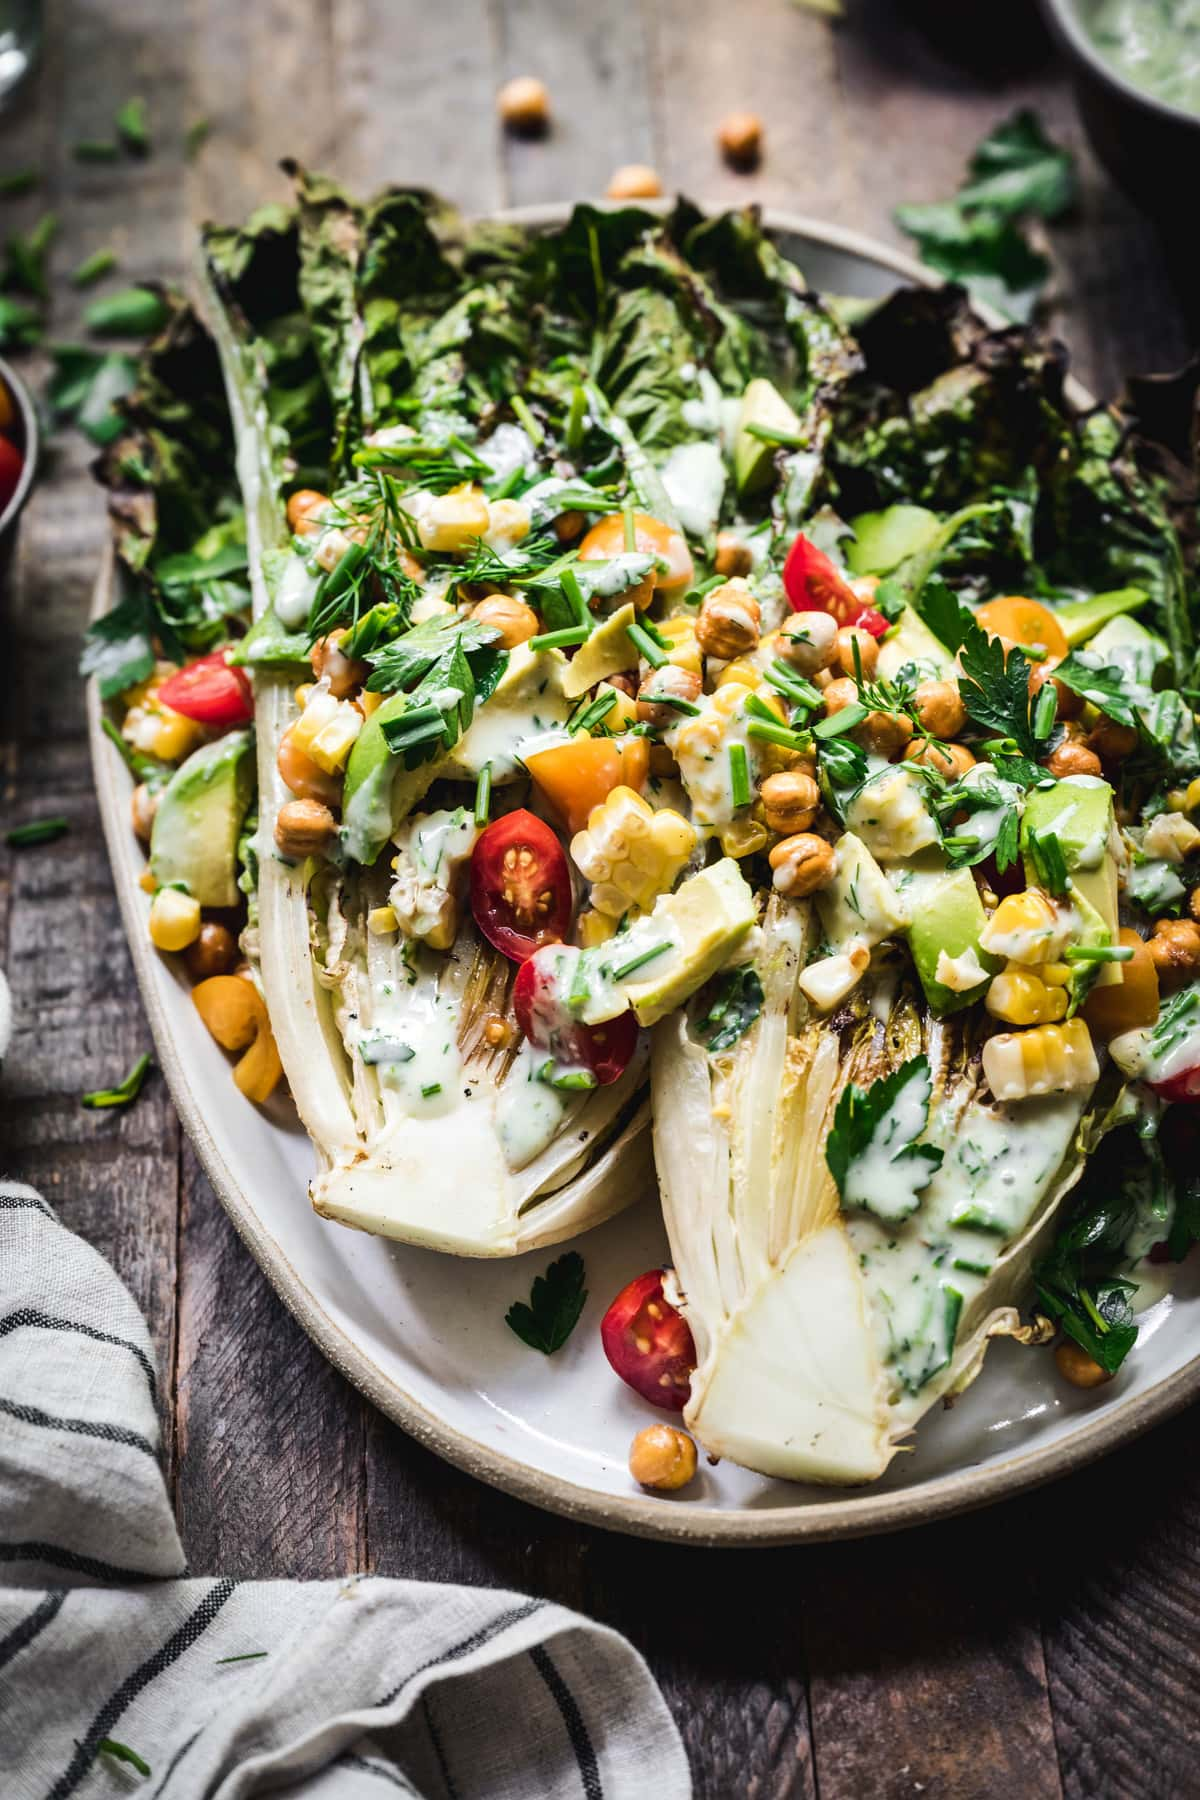 45 degree angle of grilled romaine salad with crispy chickpeas, vegan ranch and grilled corn on an oval platter